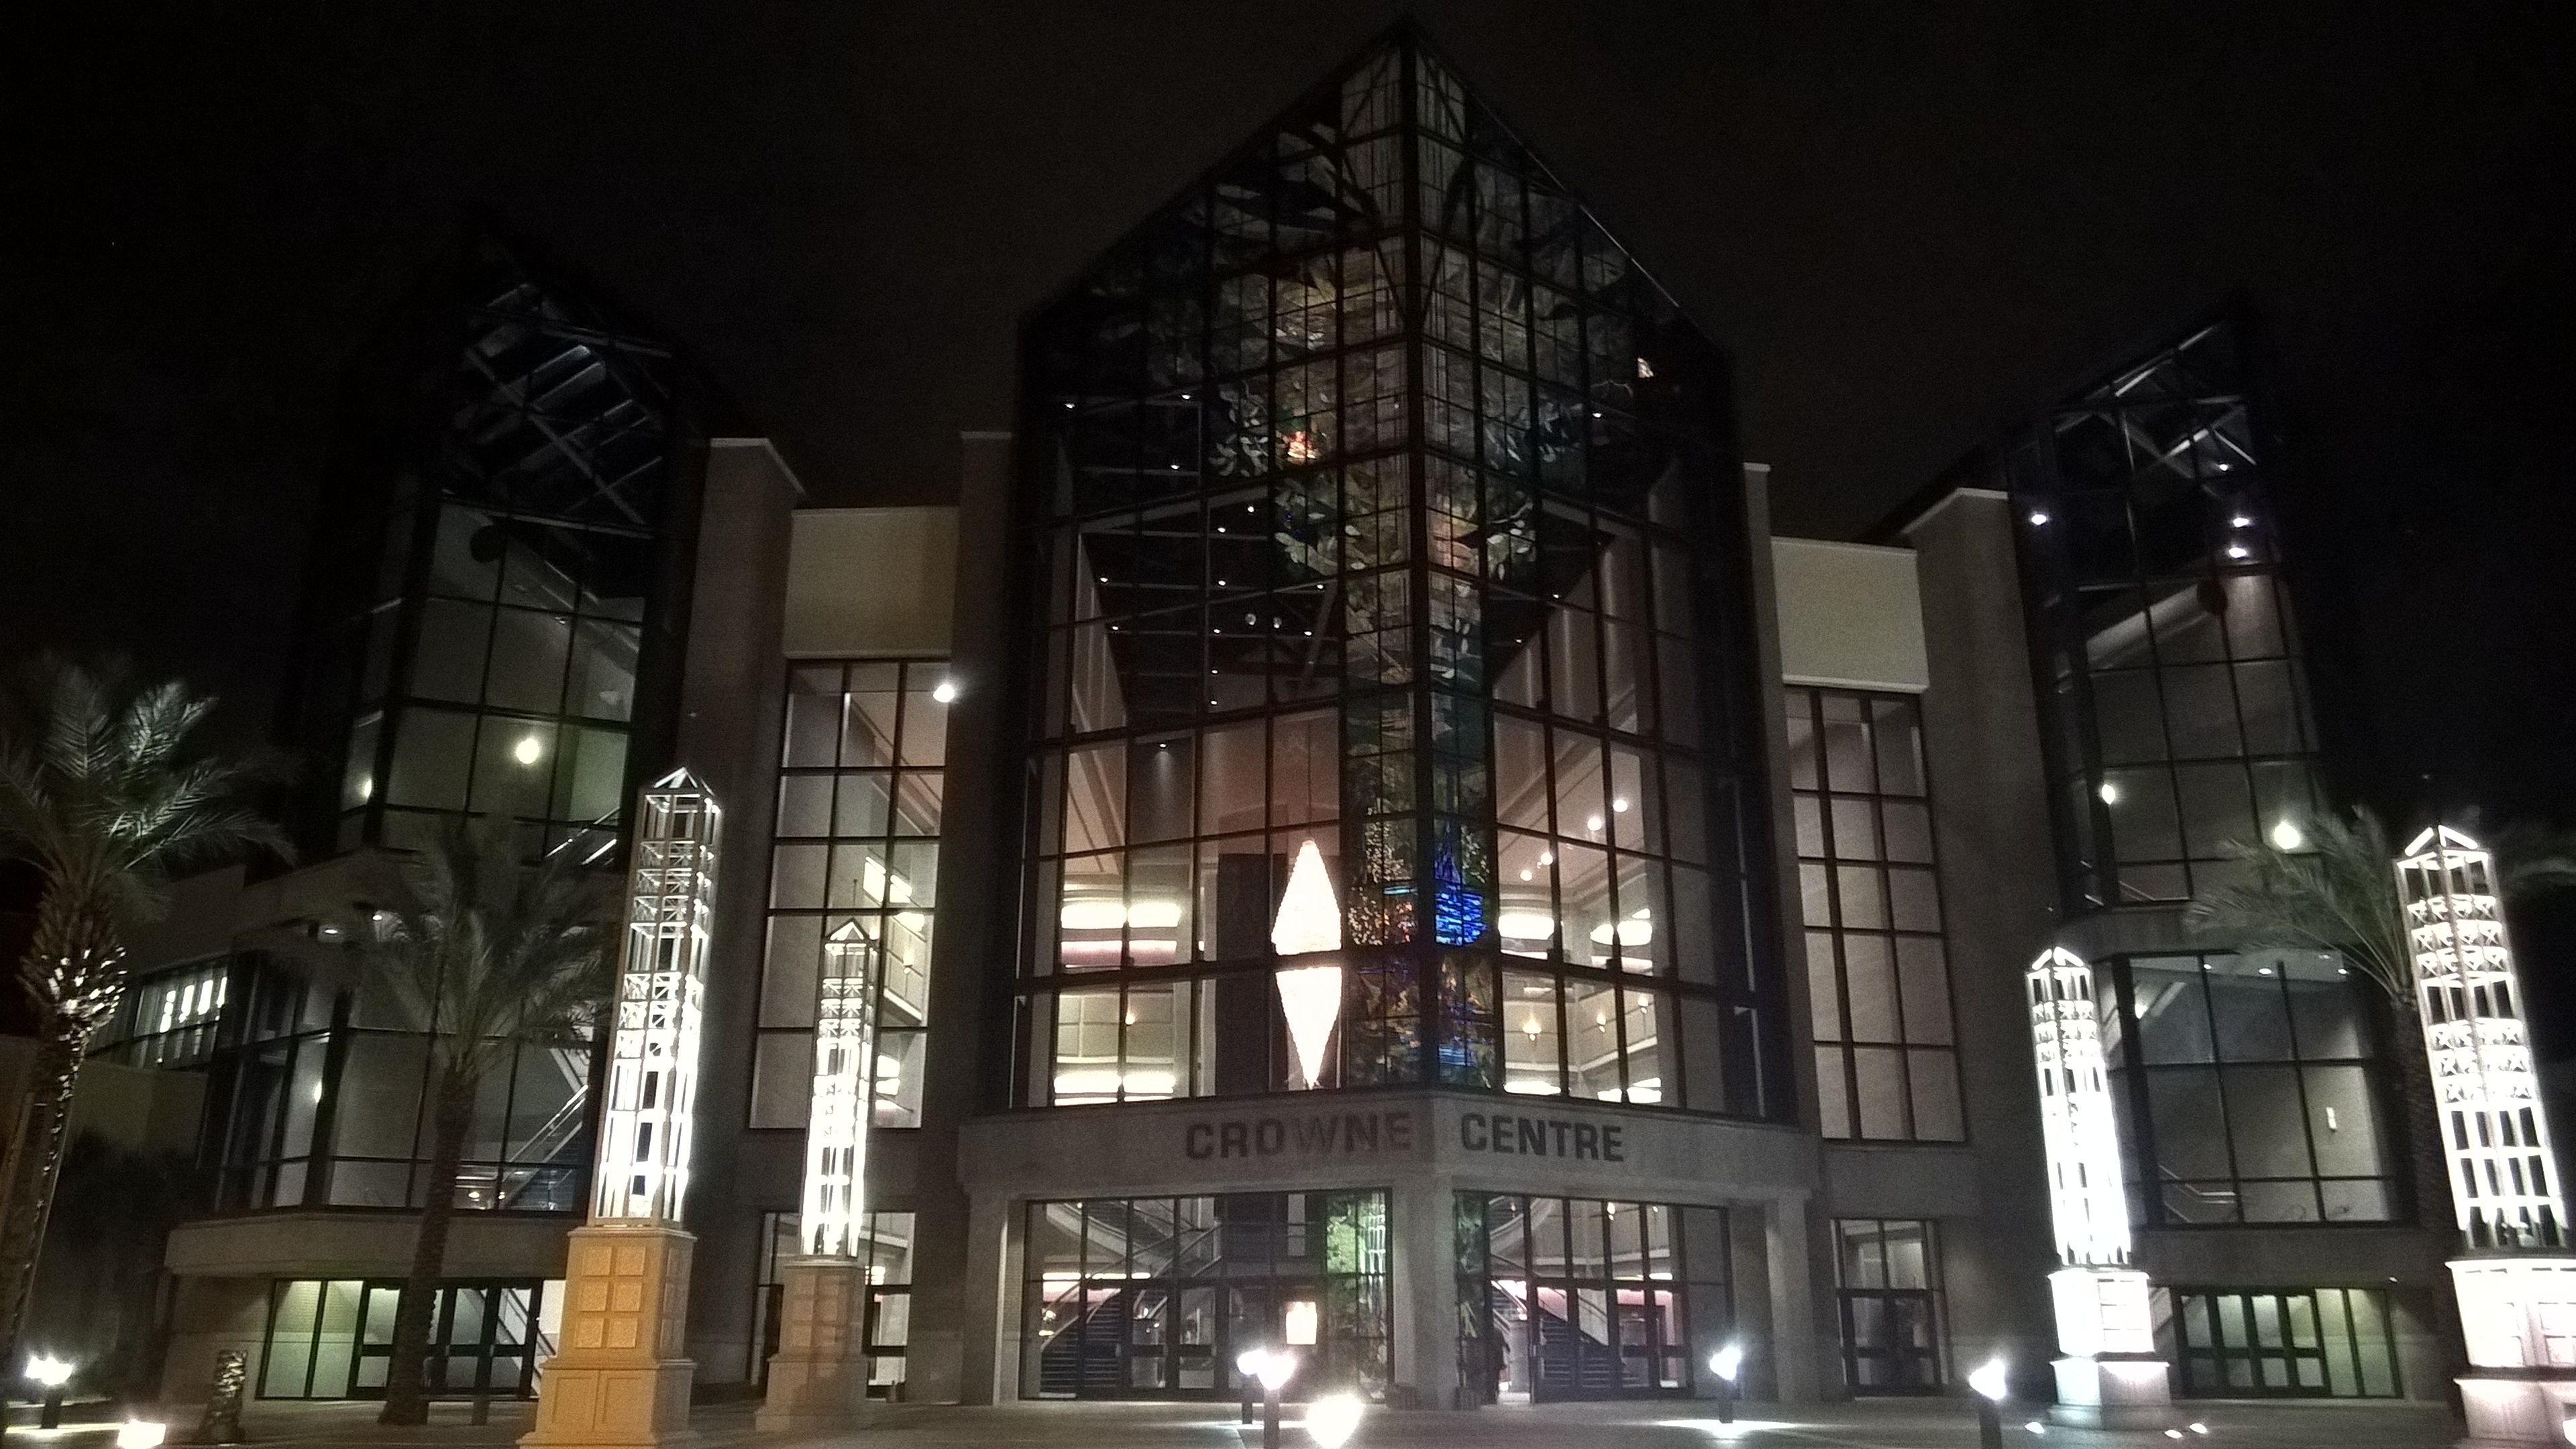 Crowne Center at night